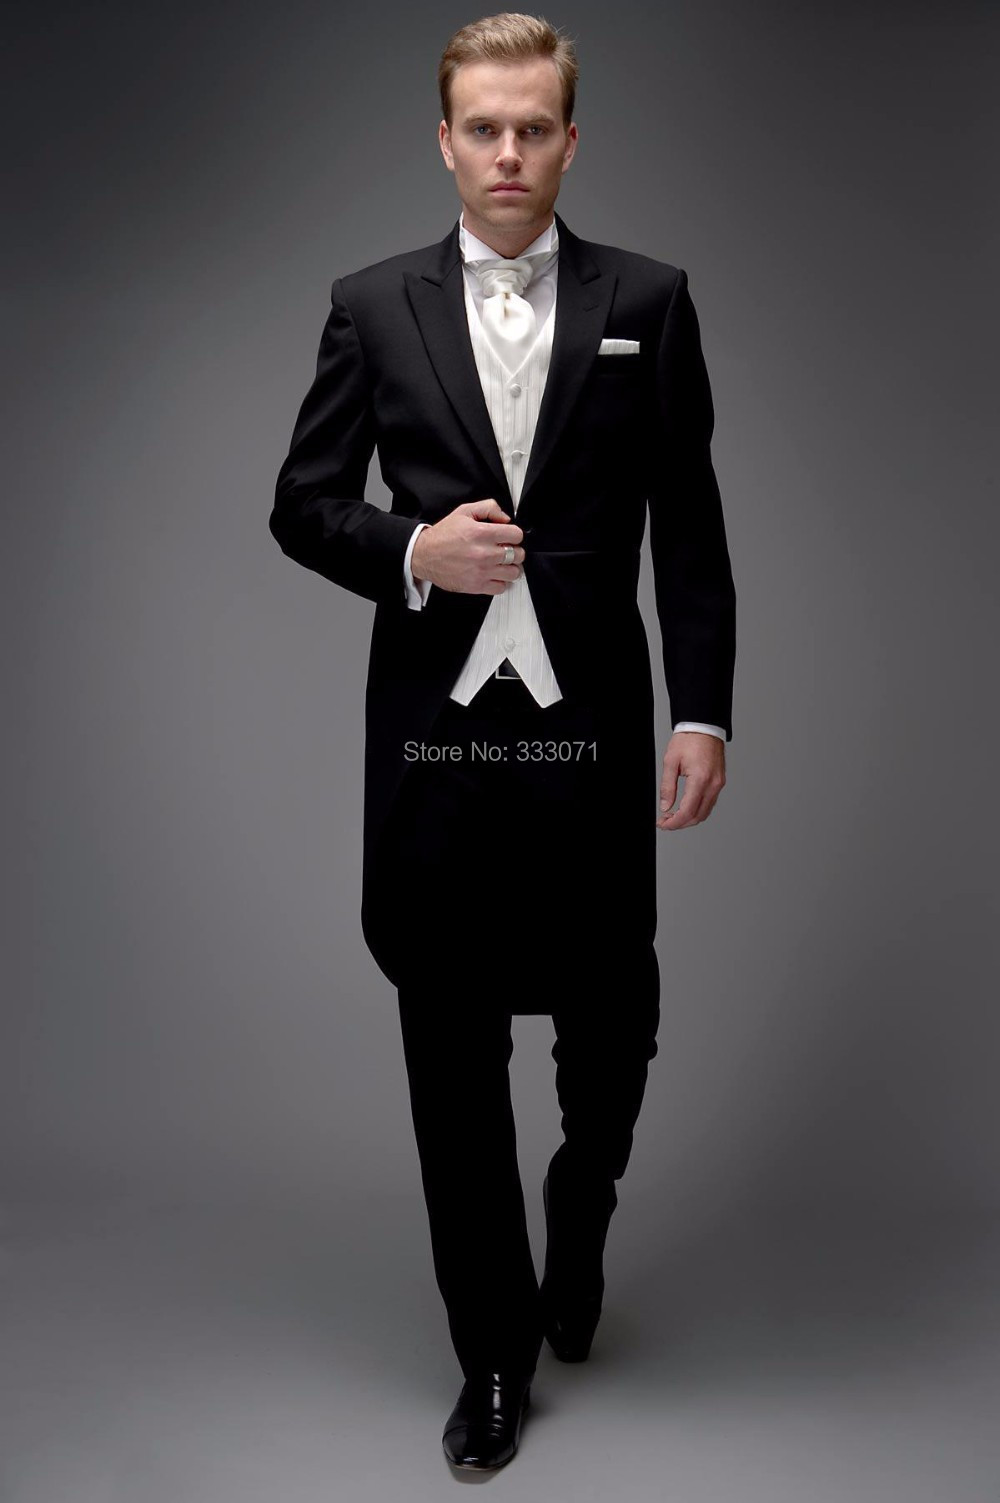 custom made slim fit smokings de mari meilleur homme suit notch revers groomsman hommes de mariage - Costume Queue De Pie Homme Mariage